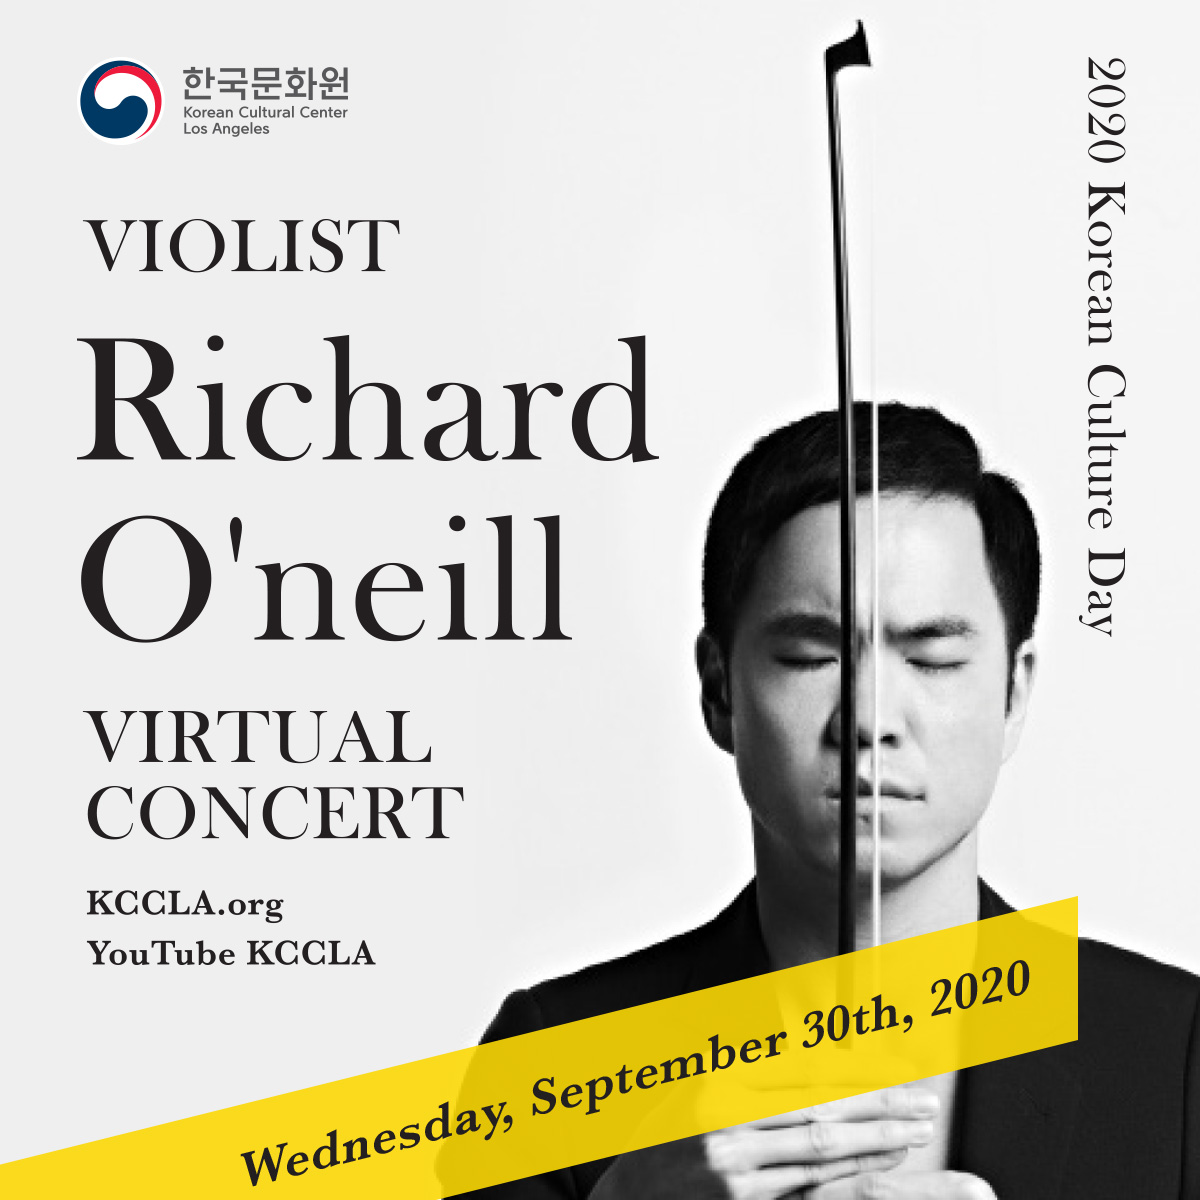 VIOLIST RICHARD O'NEILL VIRTUAL CONCERT